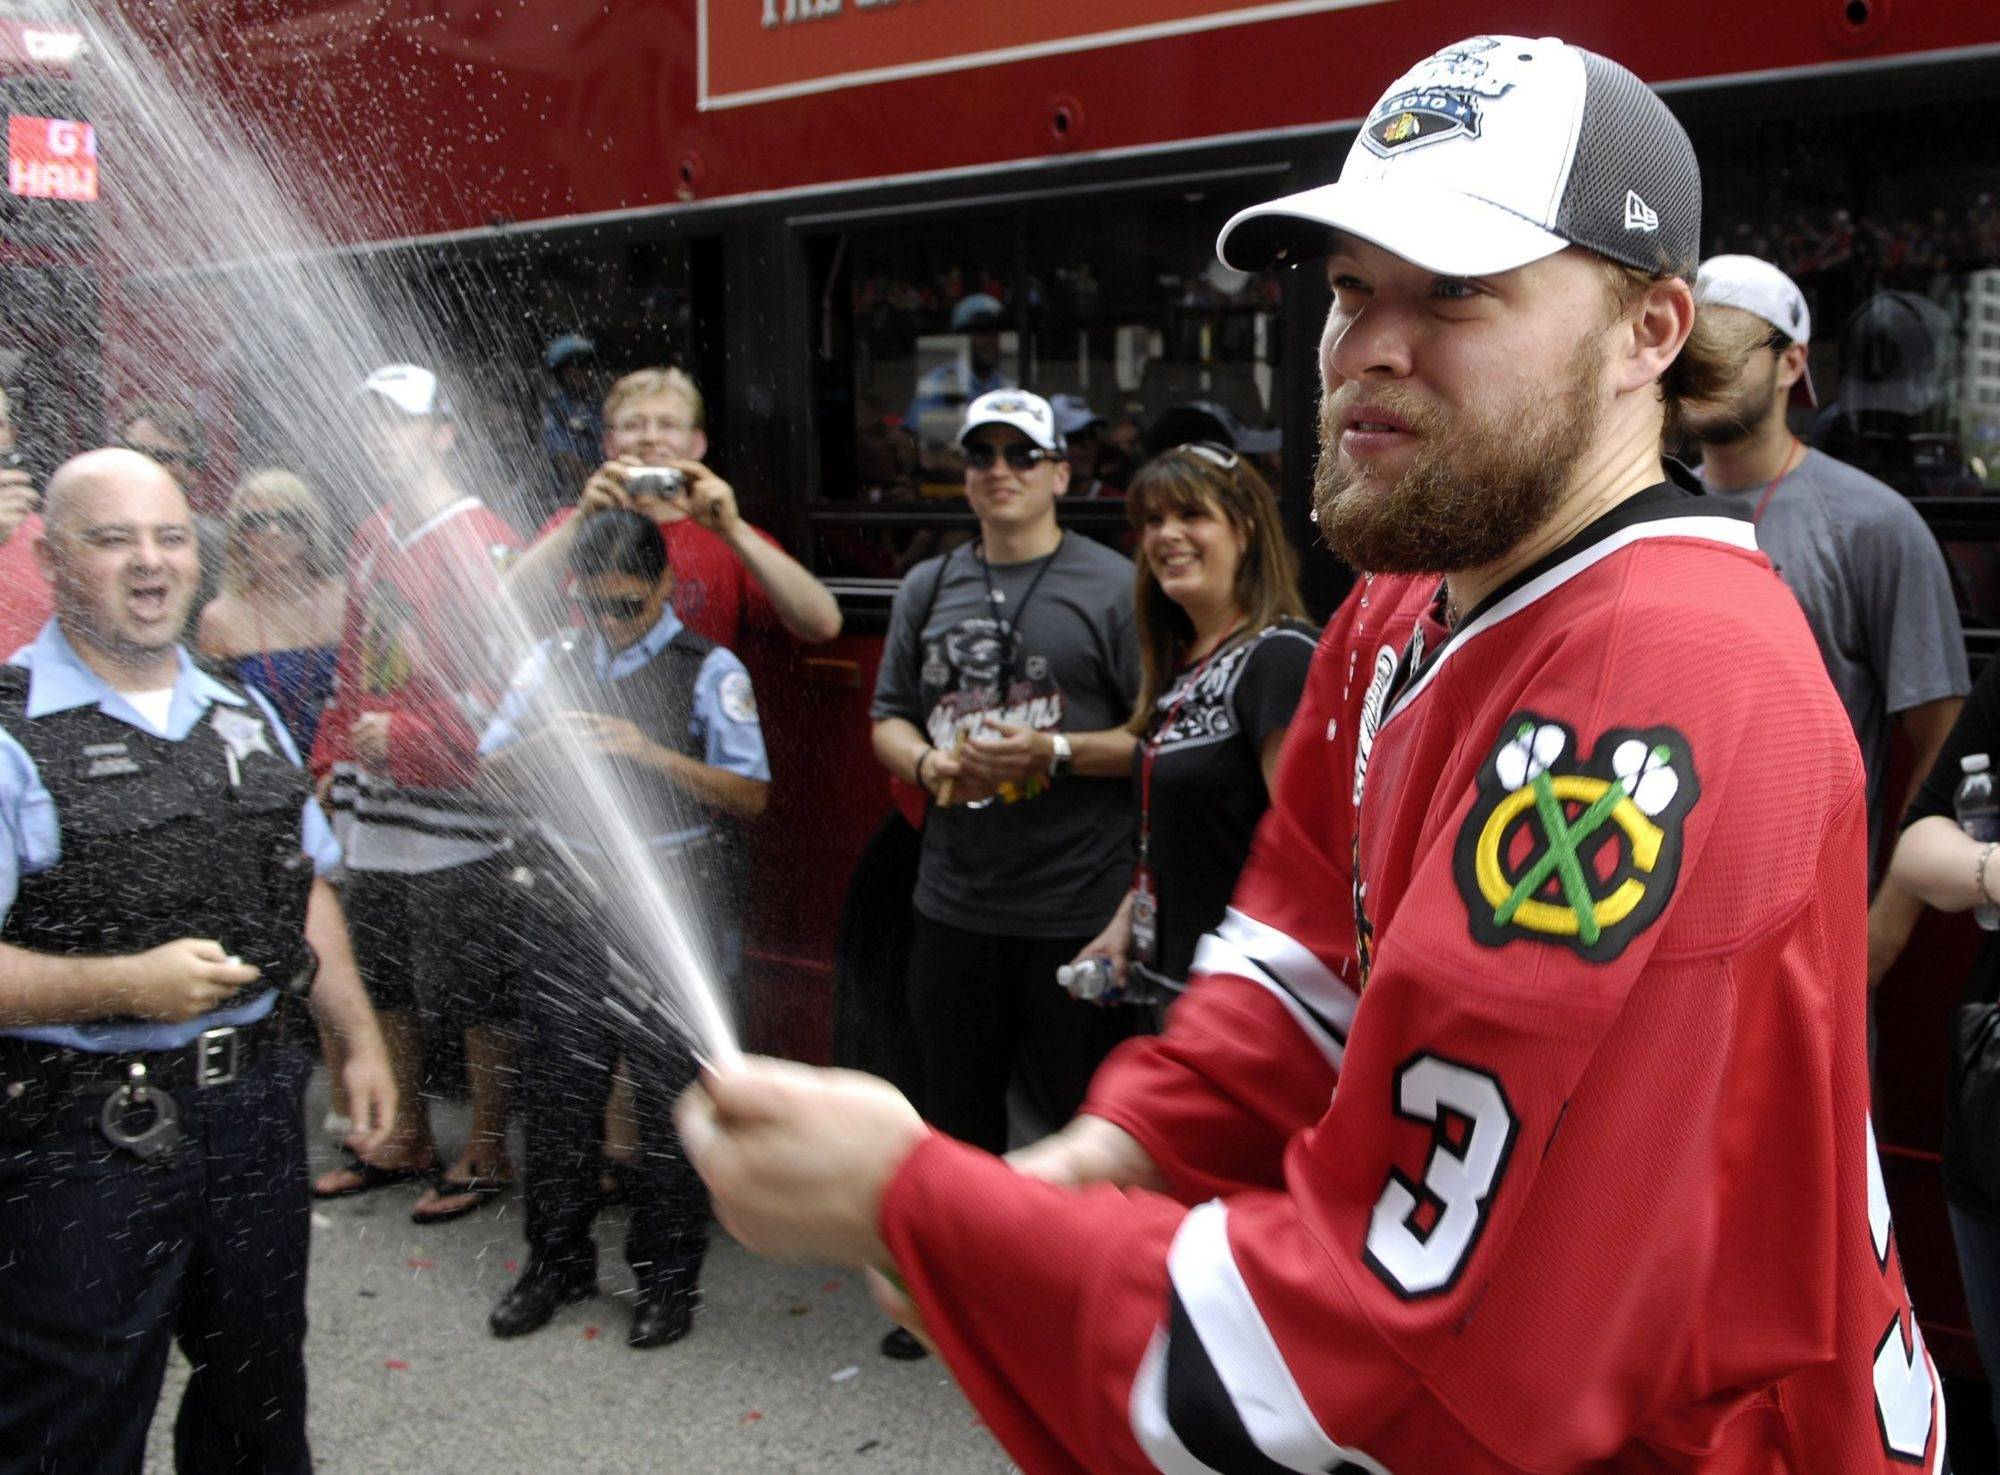 Chicago Blackhawks' goalie Antti Niemi at the victory parade.